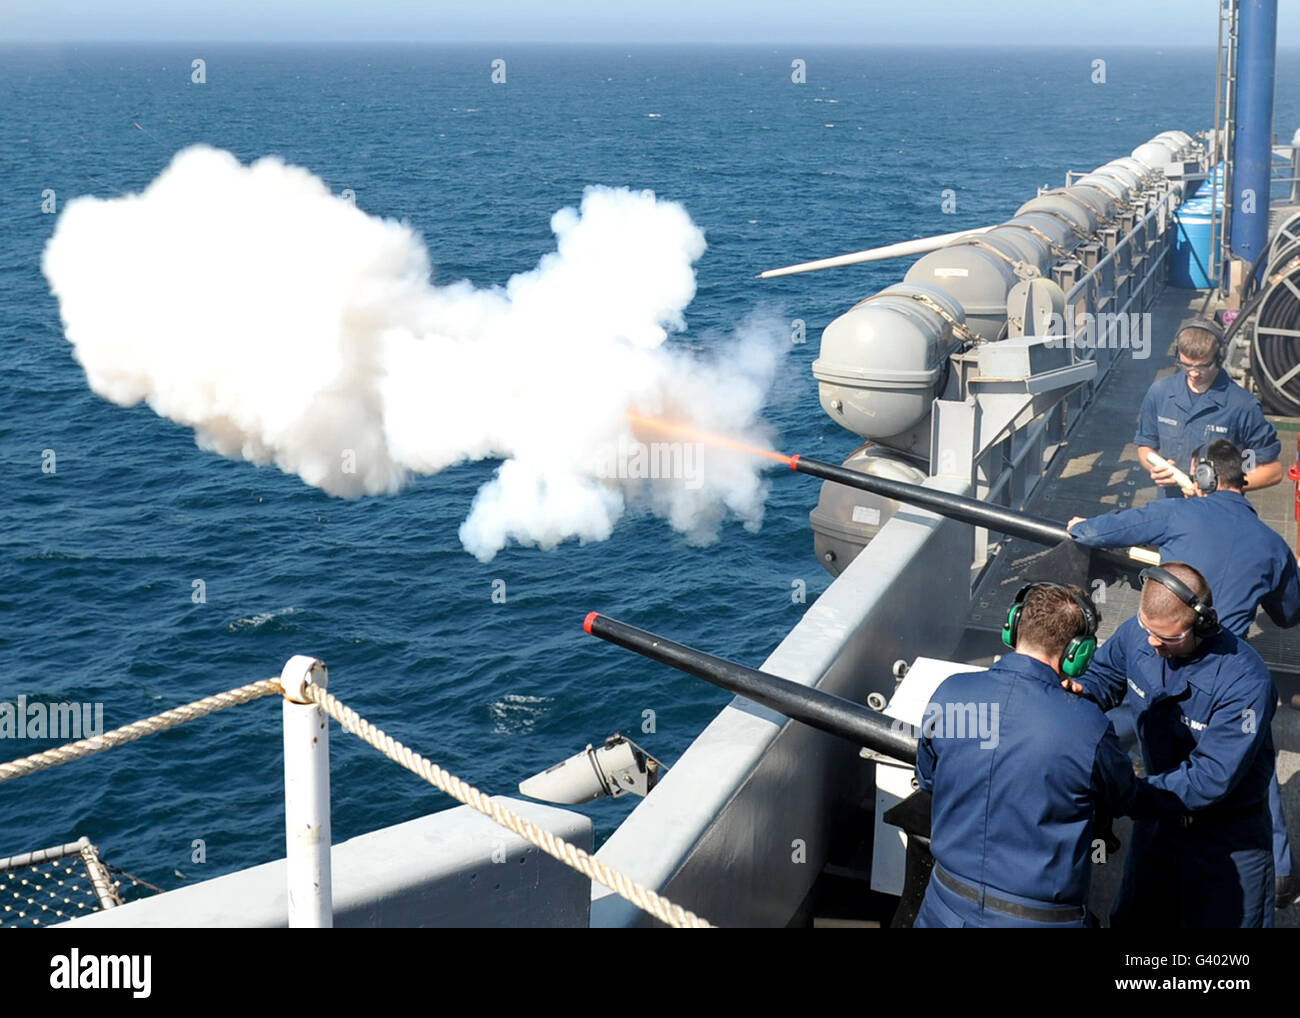 Gunner's mates test fire the ship's saluting cannons aboard USS Nimitz. - Stock Image